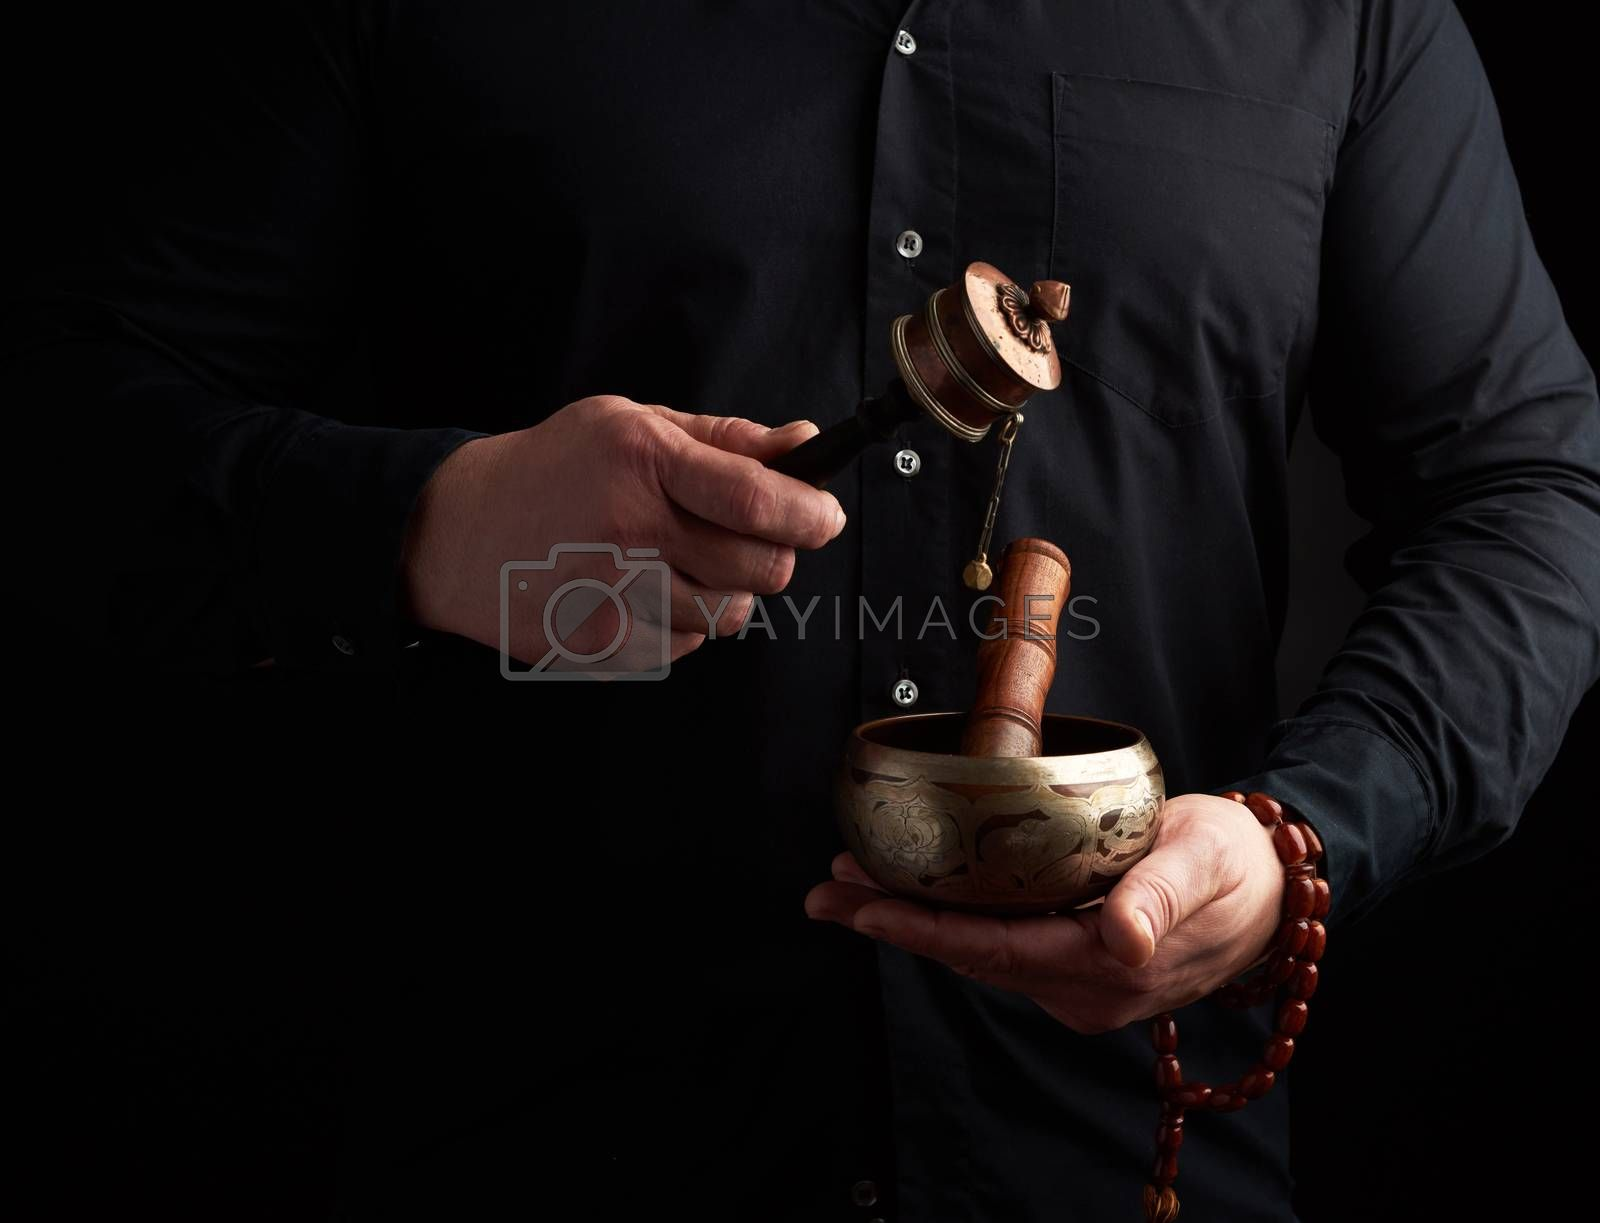 man in a black shirt holds a Tibetan brass singing bowl and a wooden stick and a prayer drum, a ritual of meditation, prayer and immersion in a trance. Alternative treatment